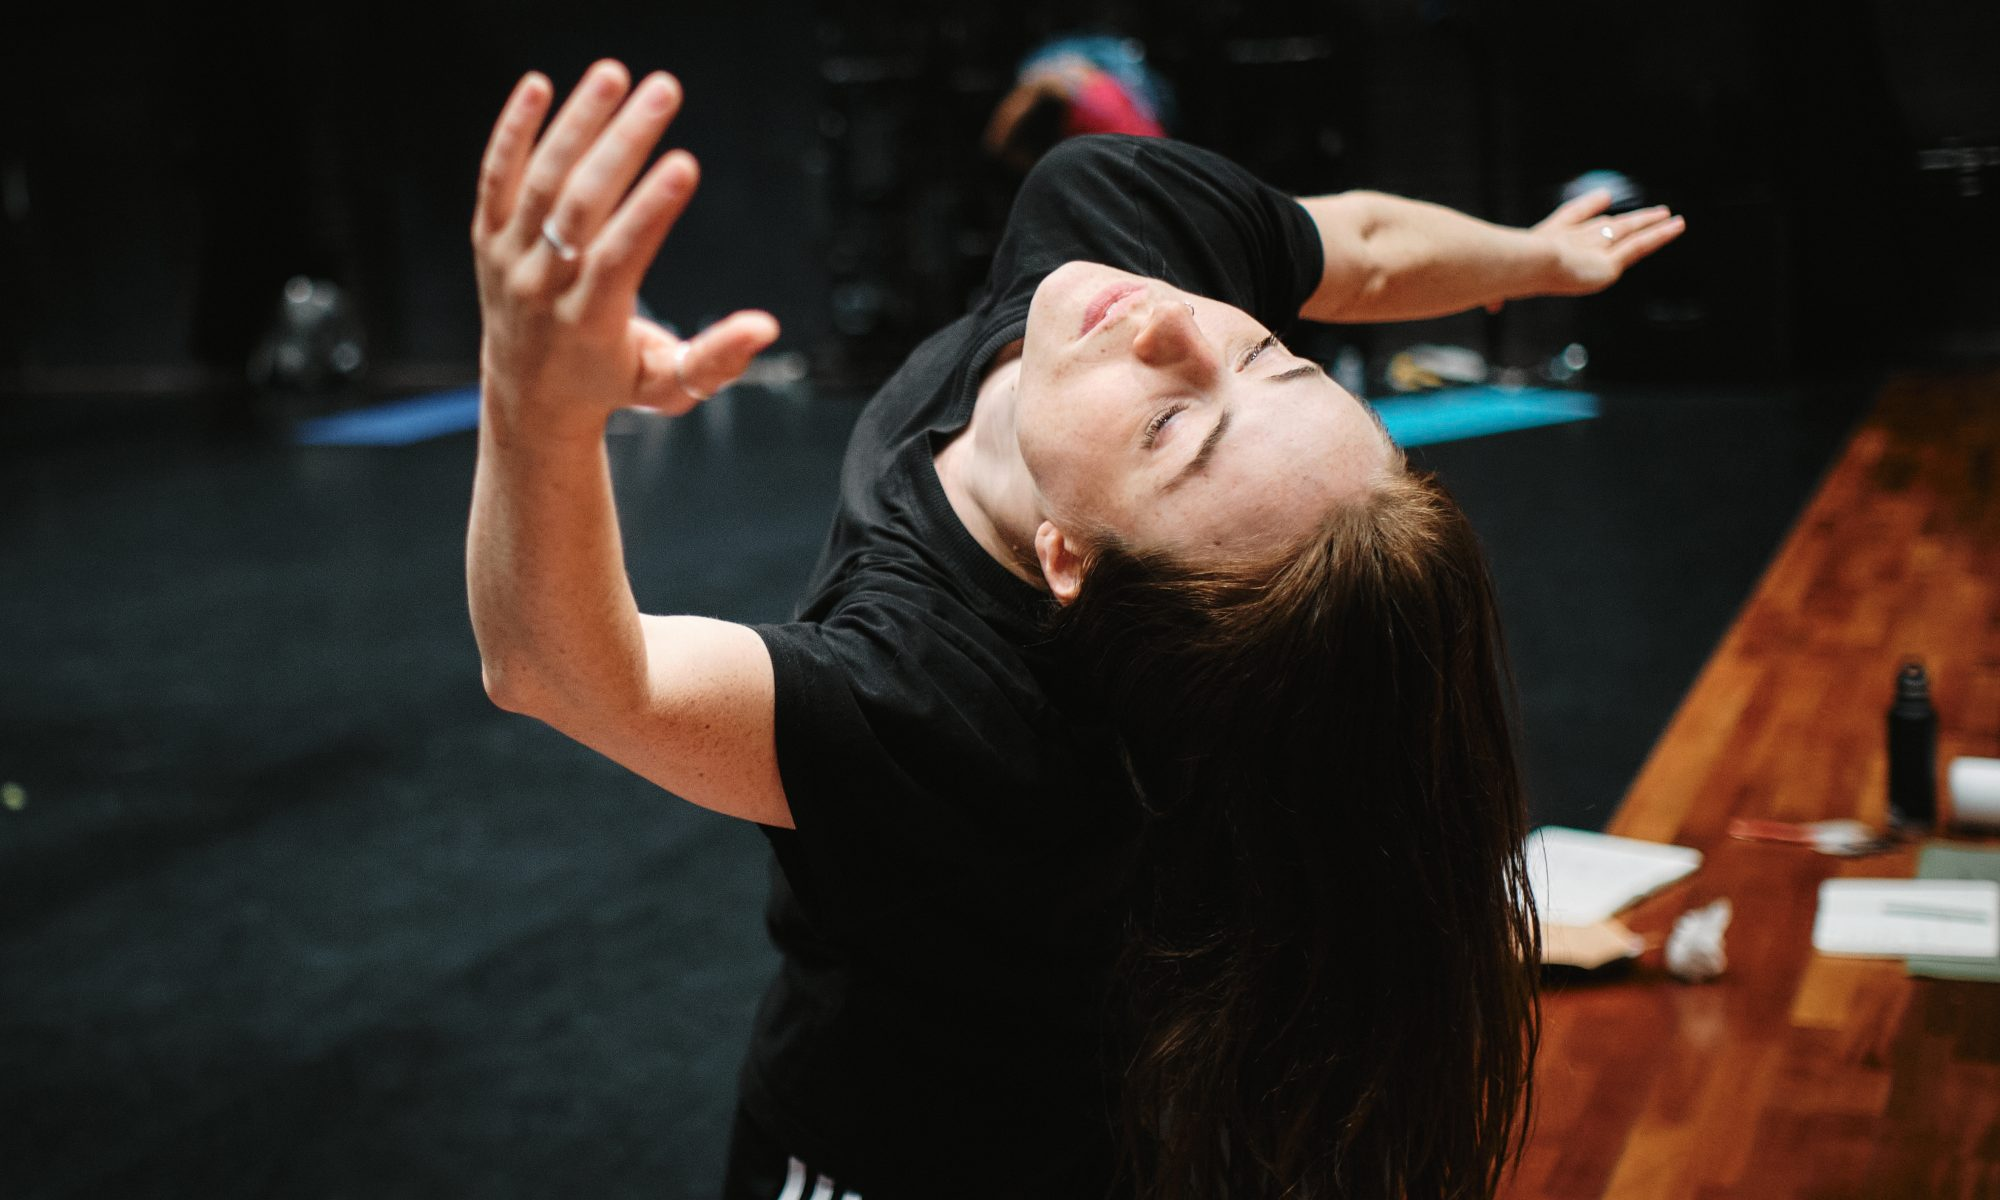 Alicia Meehan dancing. The picture is taken from a high angle, angled down at her face which is falling back. Her right arm twisting out to the side and her left arm stretching up towards the camera.